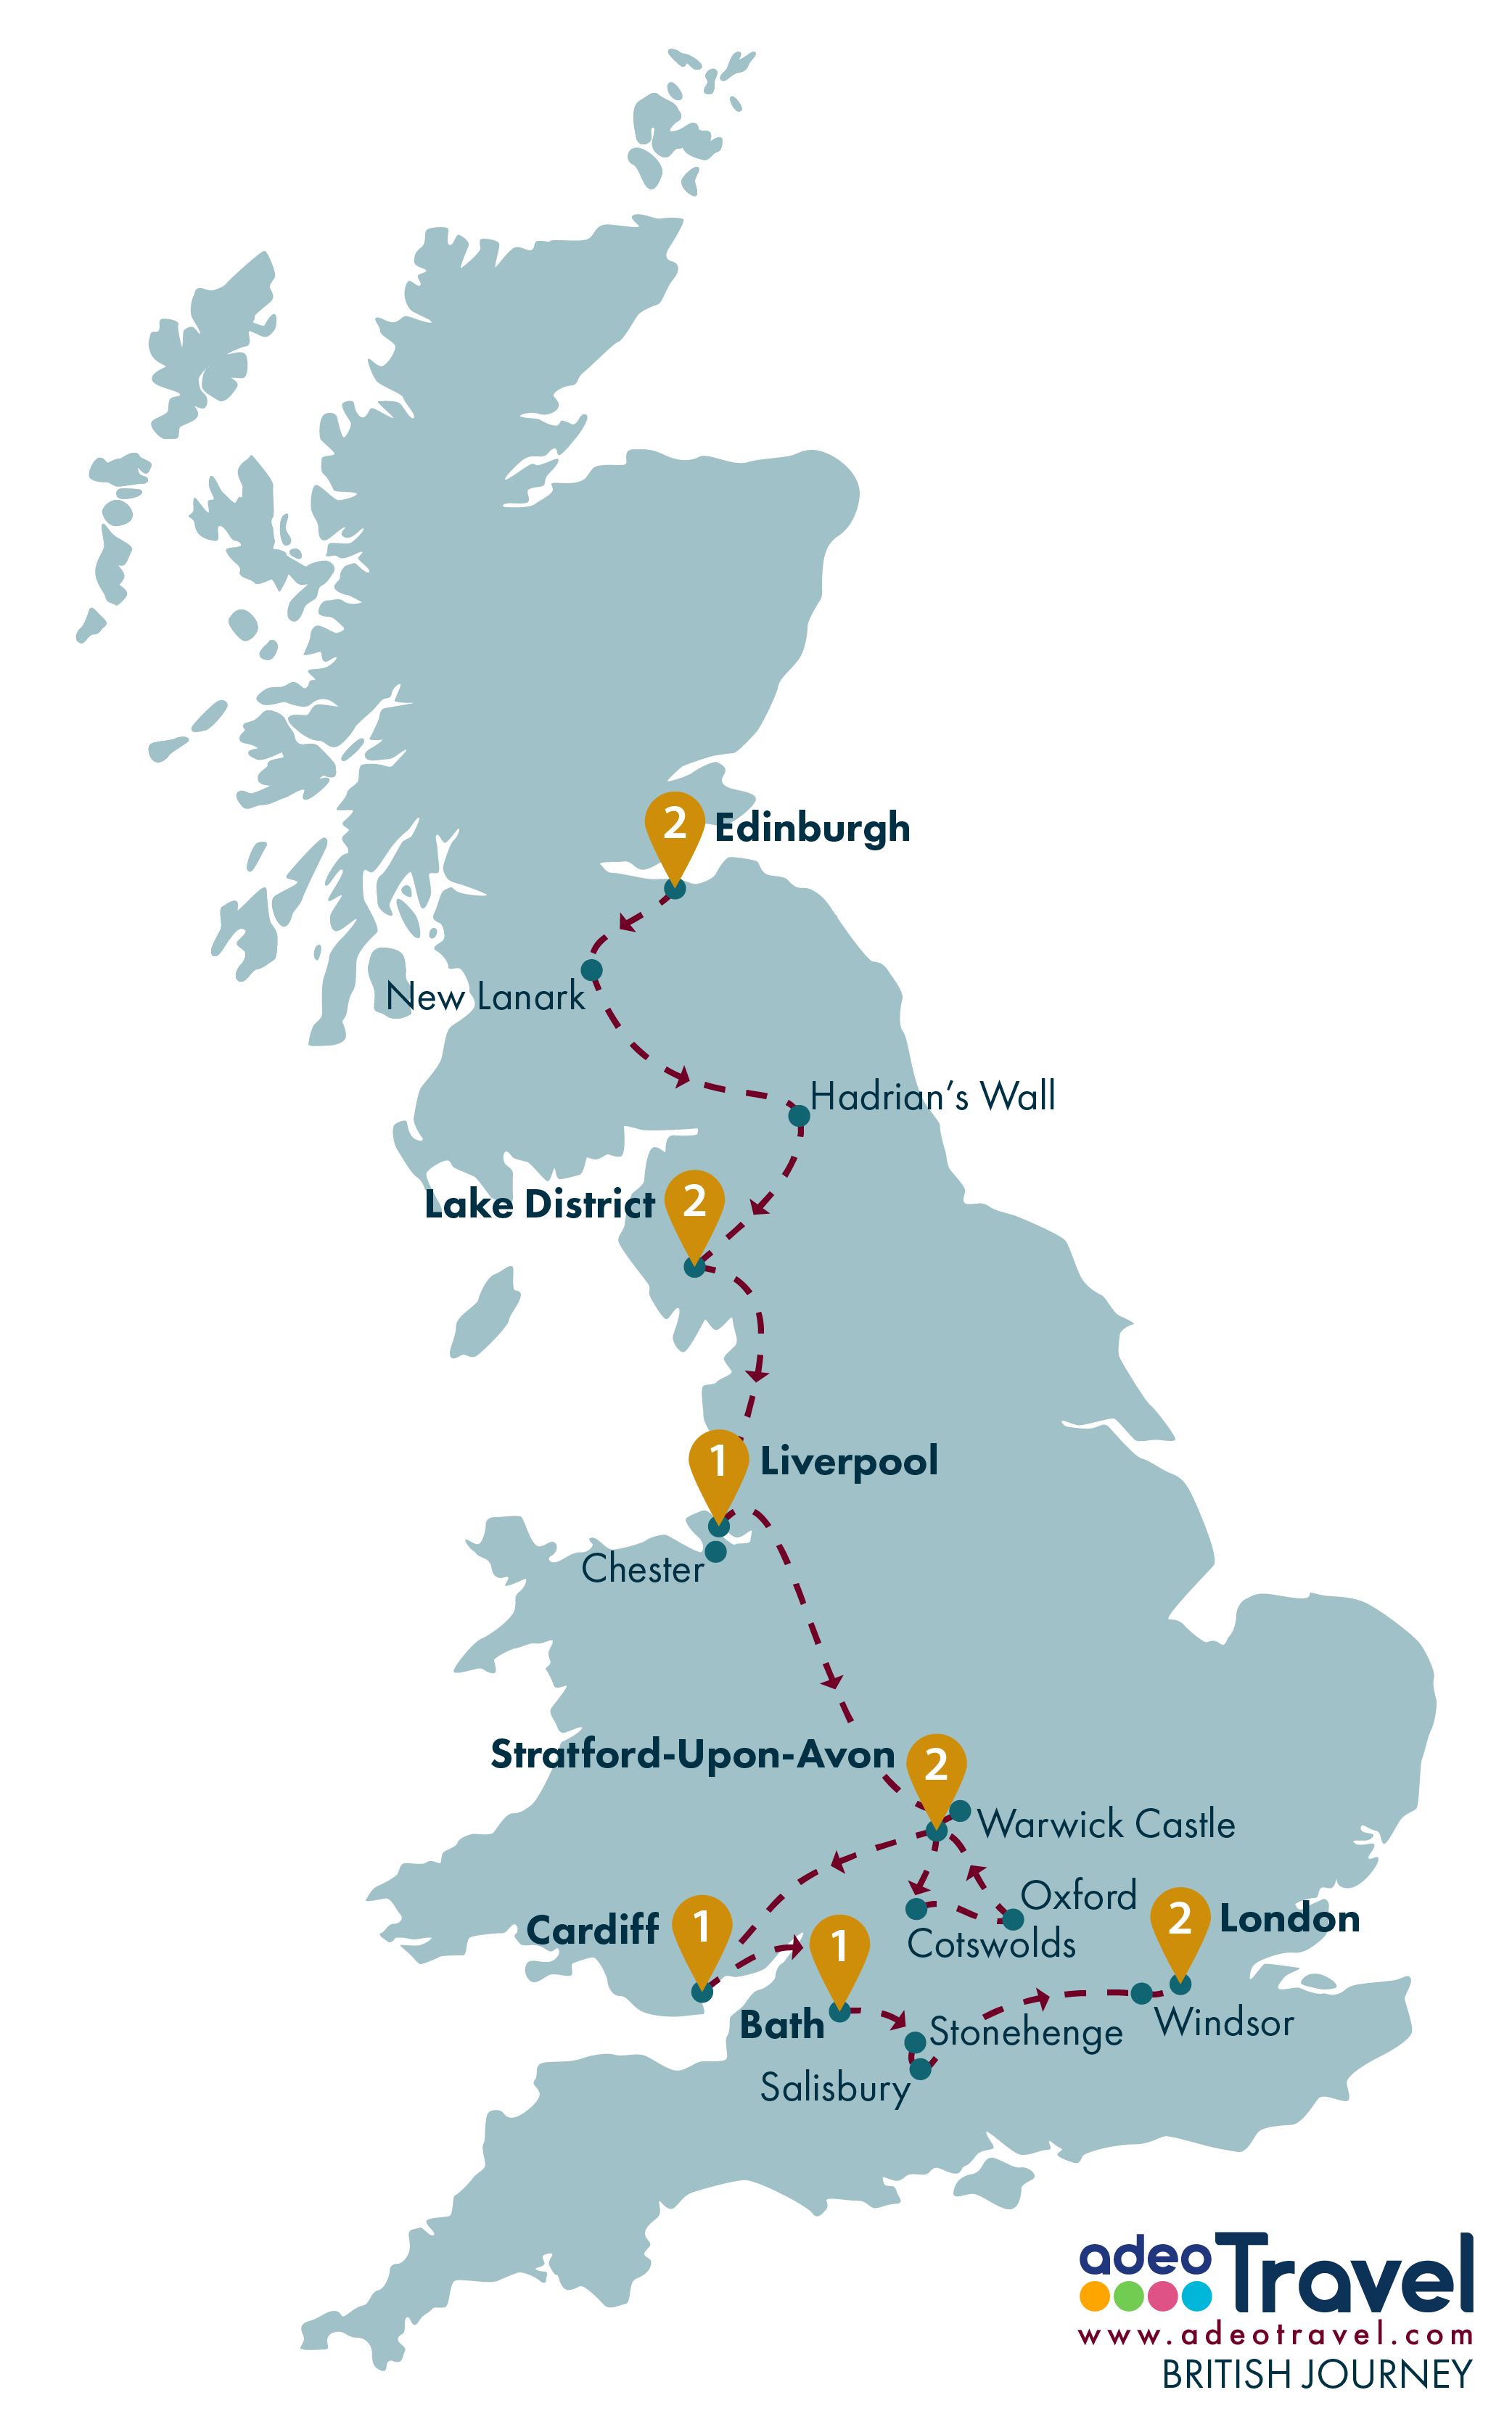 Map Of England Showing London.British Journey Tour Britain Driving Tour Of England Scotland And